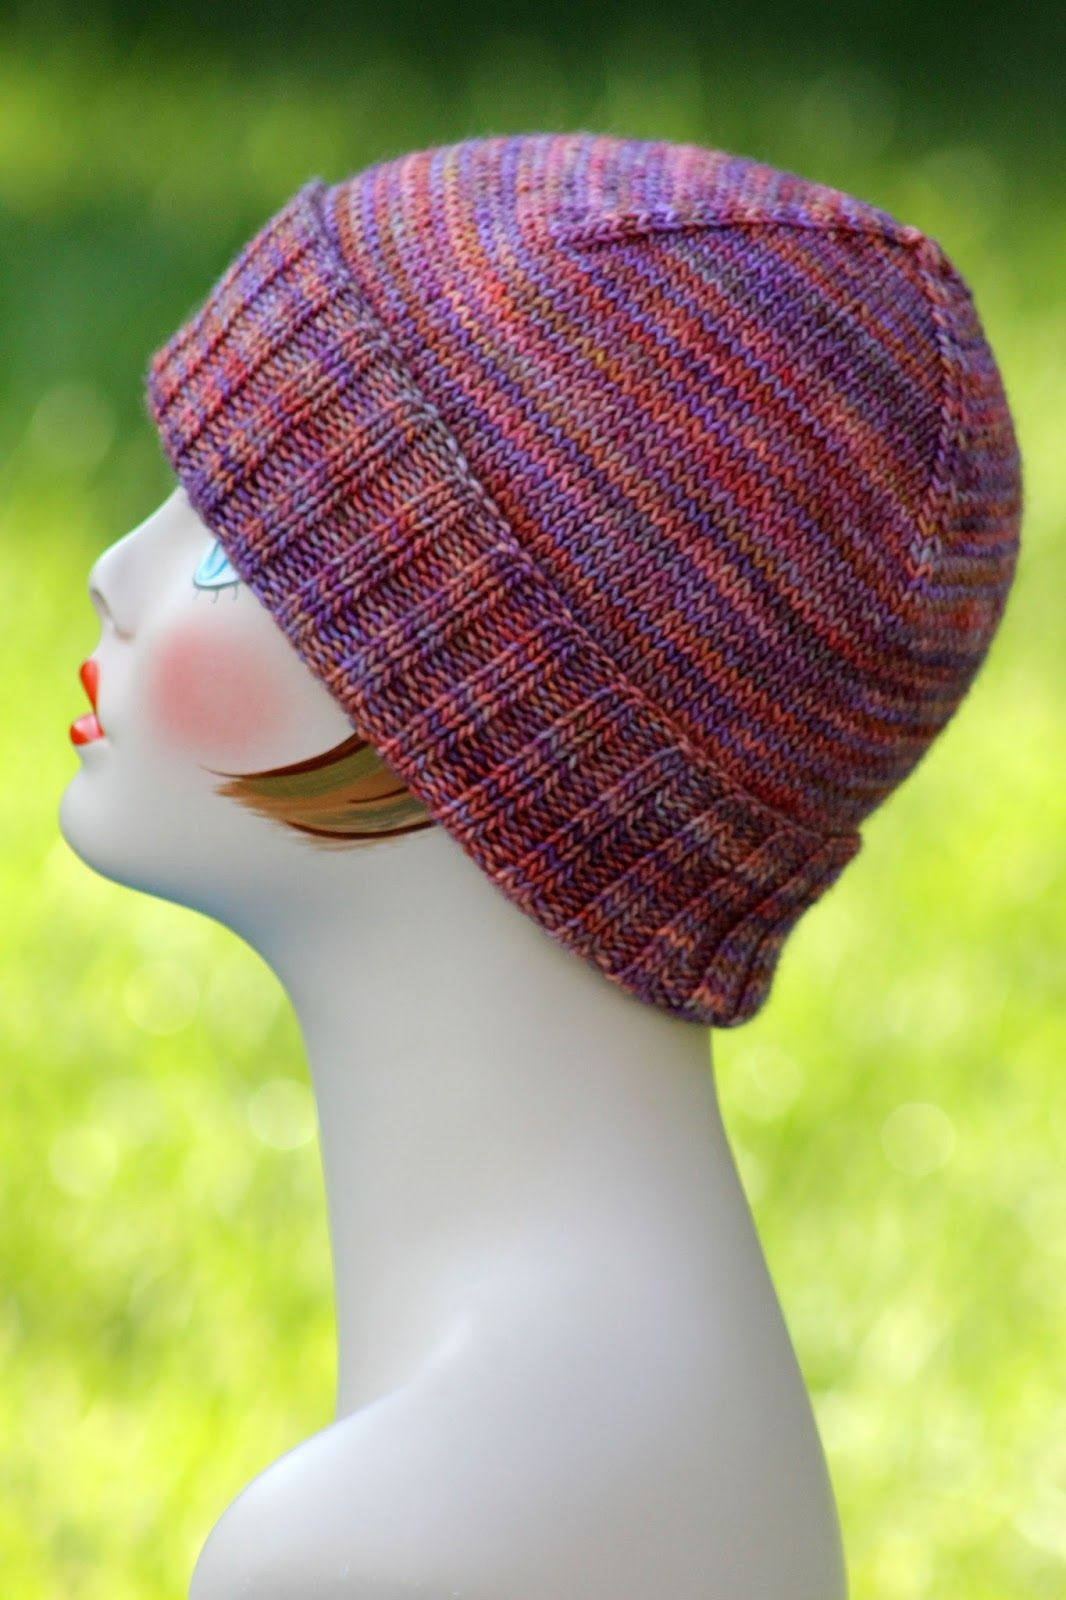 Build-Your-Own DK Weight Hat (With images) | Knitting ...